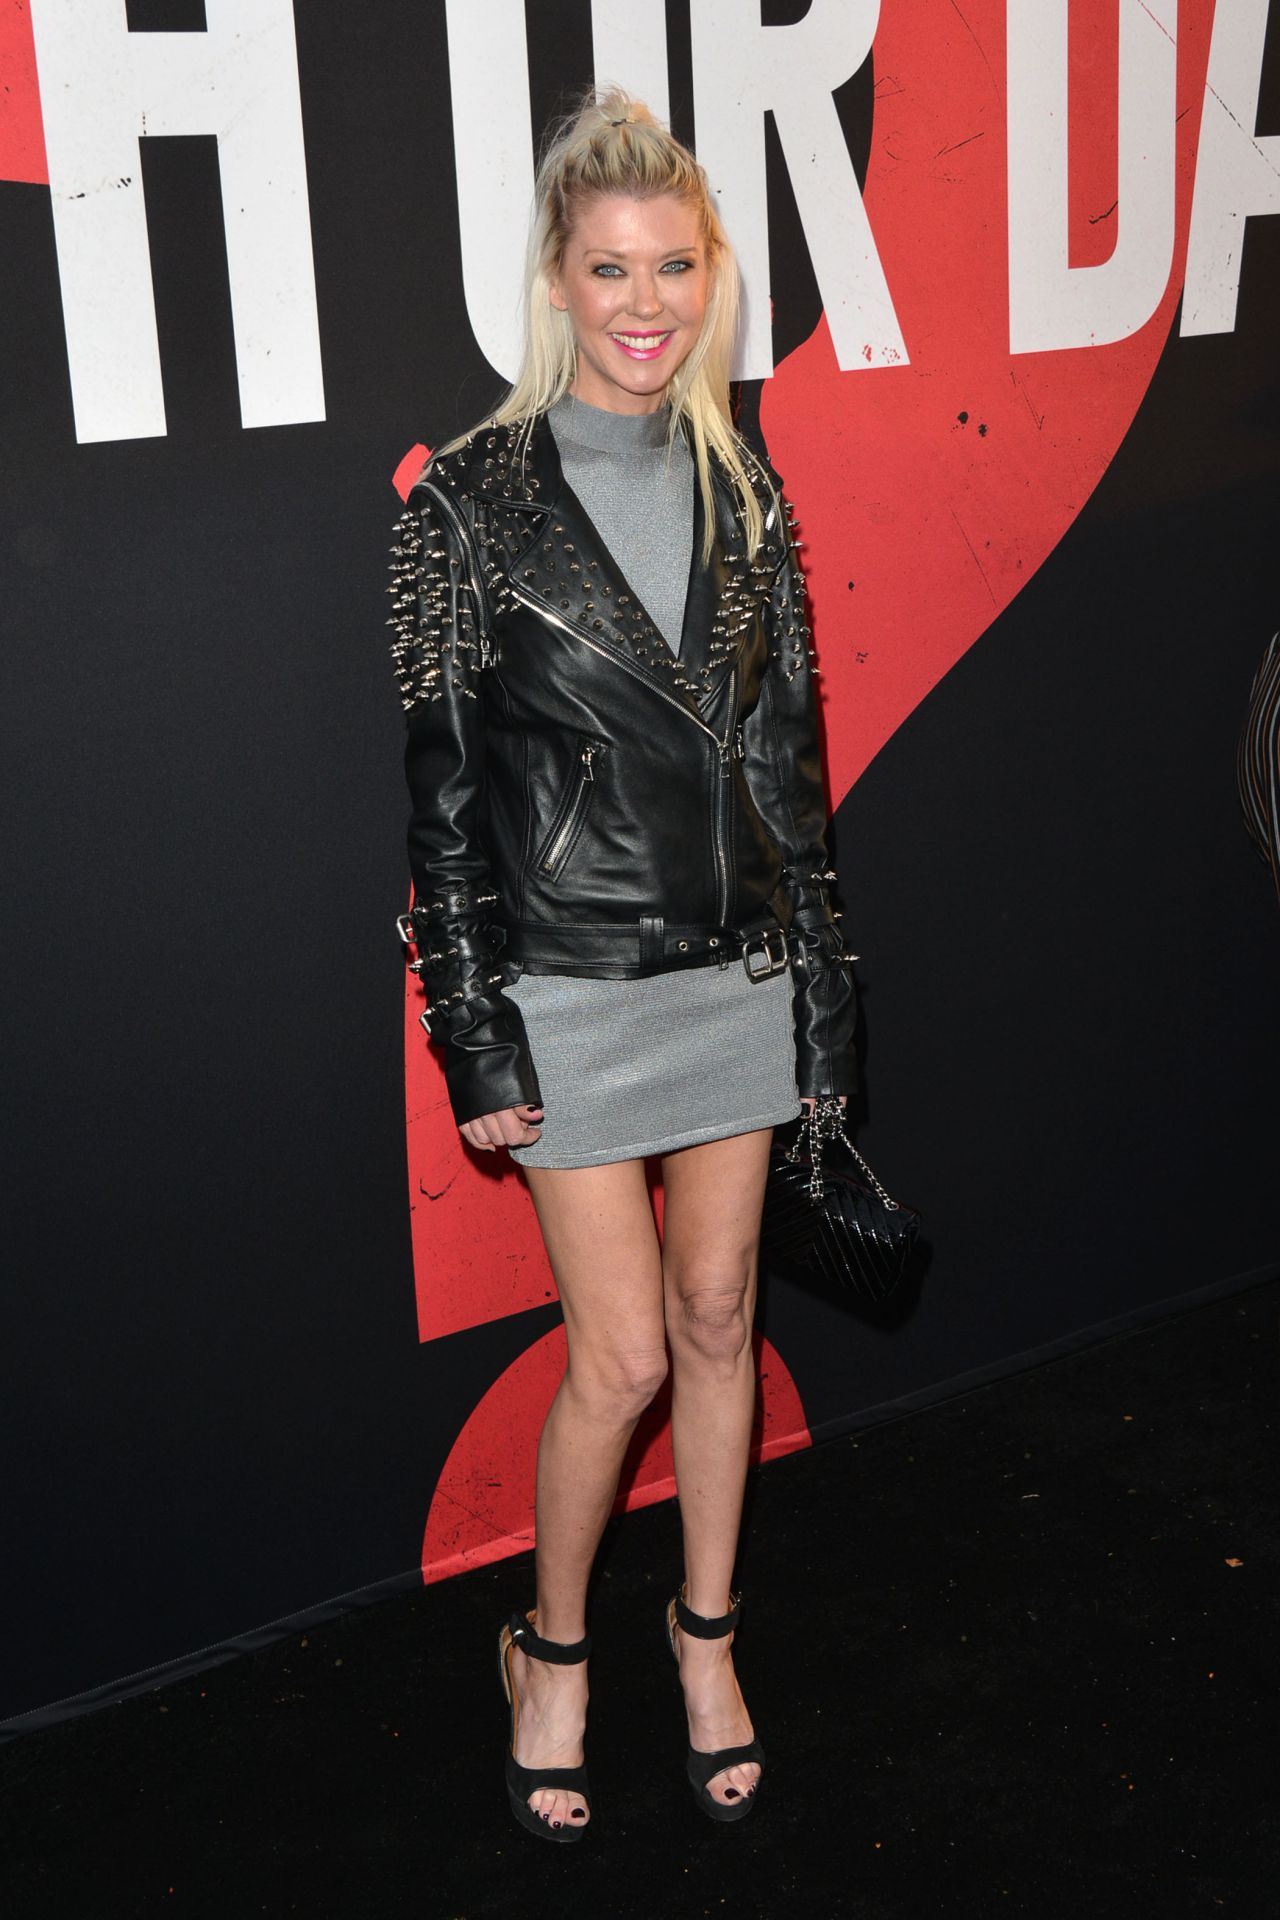 https://celebmafia.com/wp-content/uploads/2018/04/tara-reid-truth-or-dare-premiere-in-hollywood-8.jpg